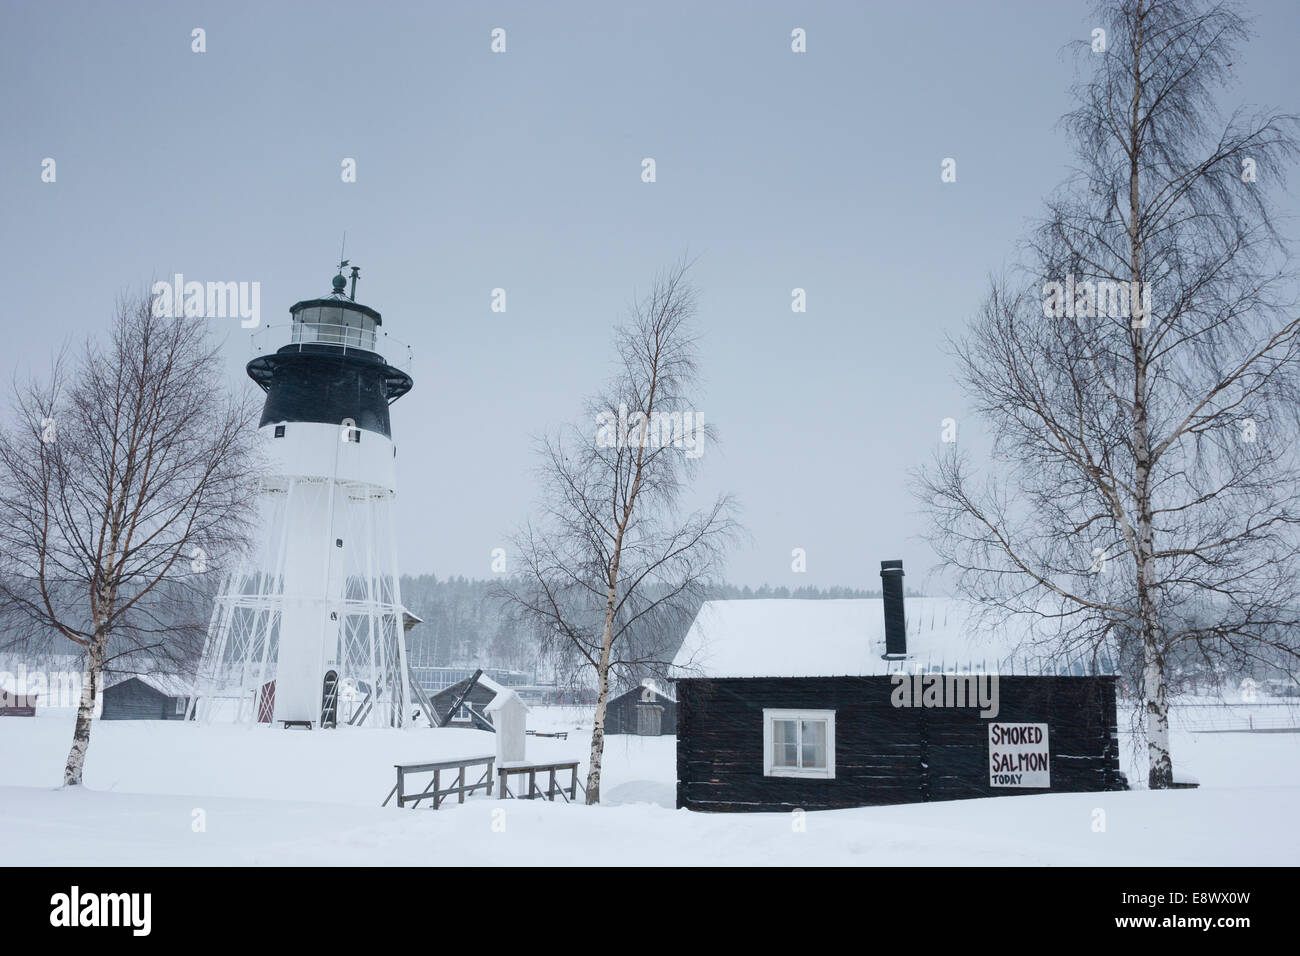 """JAVRE, SWEDEN """"Smoked salmon today"""" sign on wooden cabin with lighthouse in background. Stock Photo"""